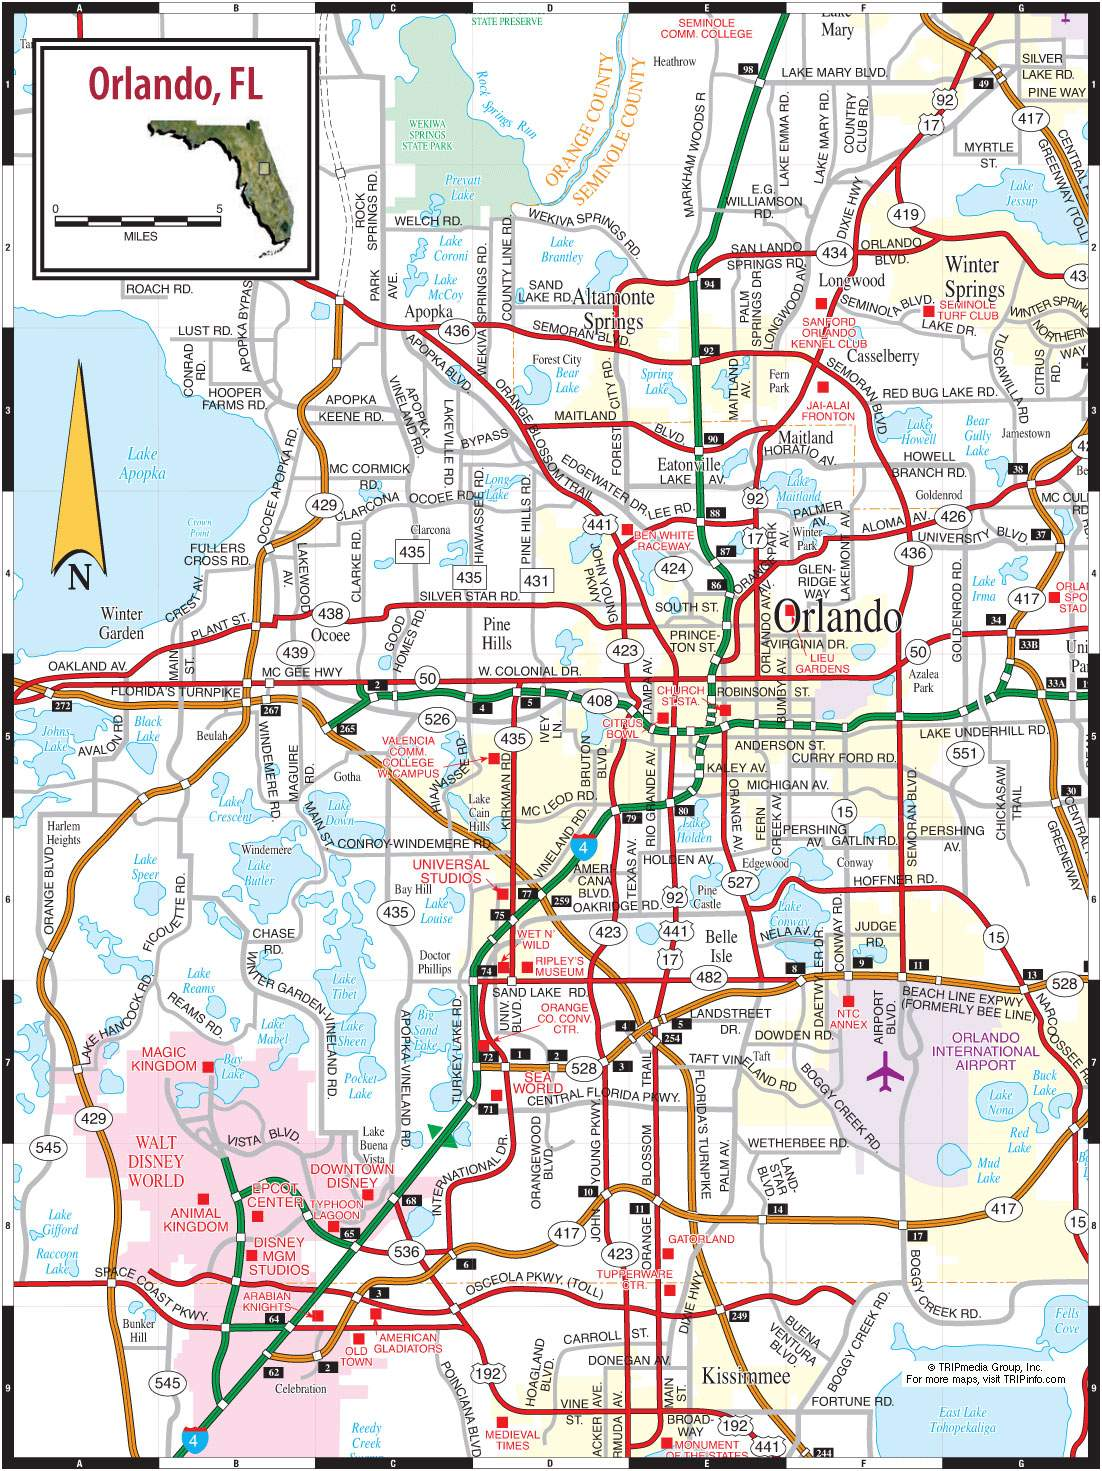 USA Maps | Printable Maps of USA for Download Usa Map Orlando on map of orlando, california orlando, zip code map orlando, florida orlando,